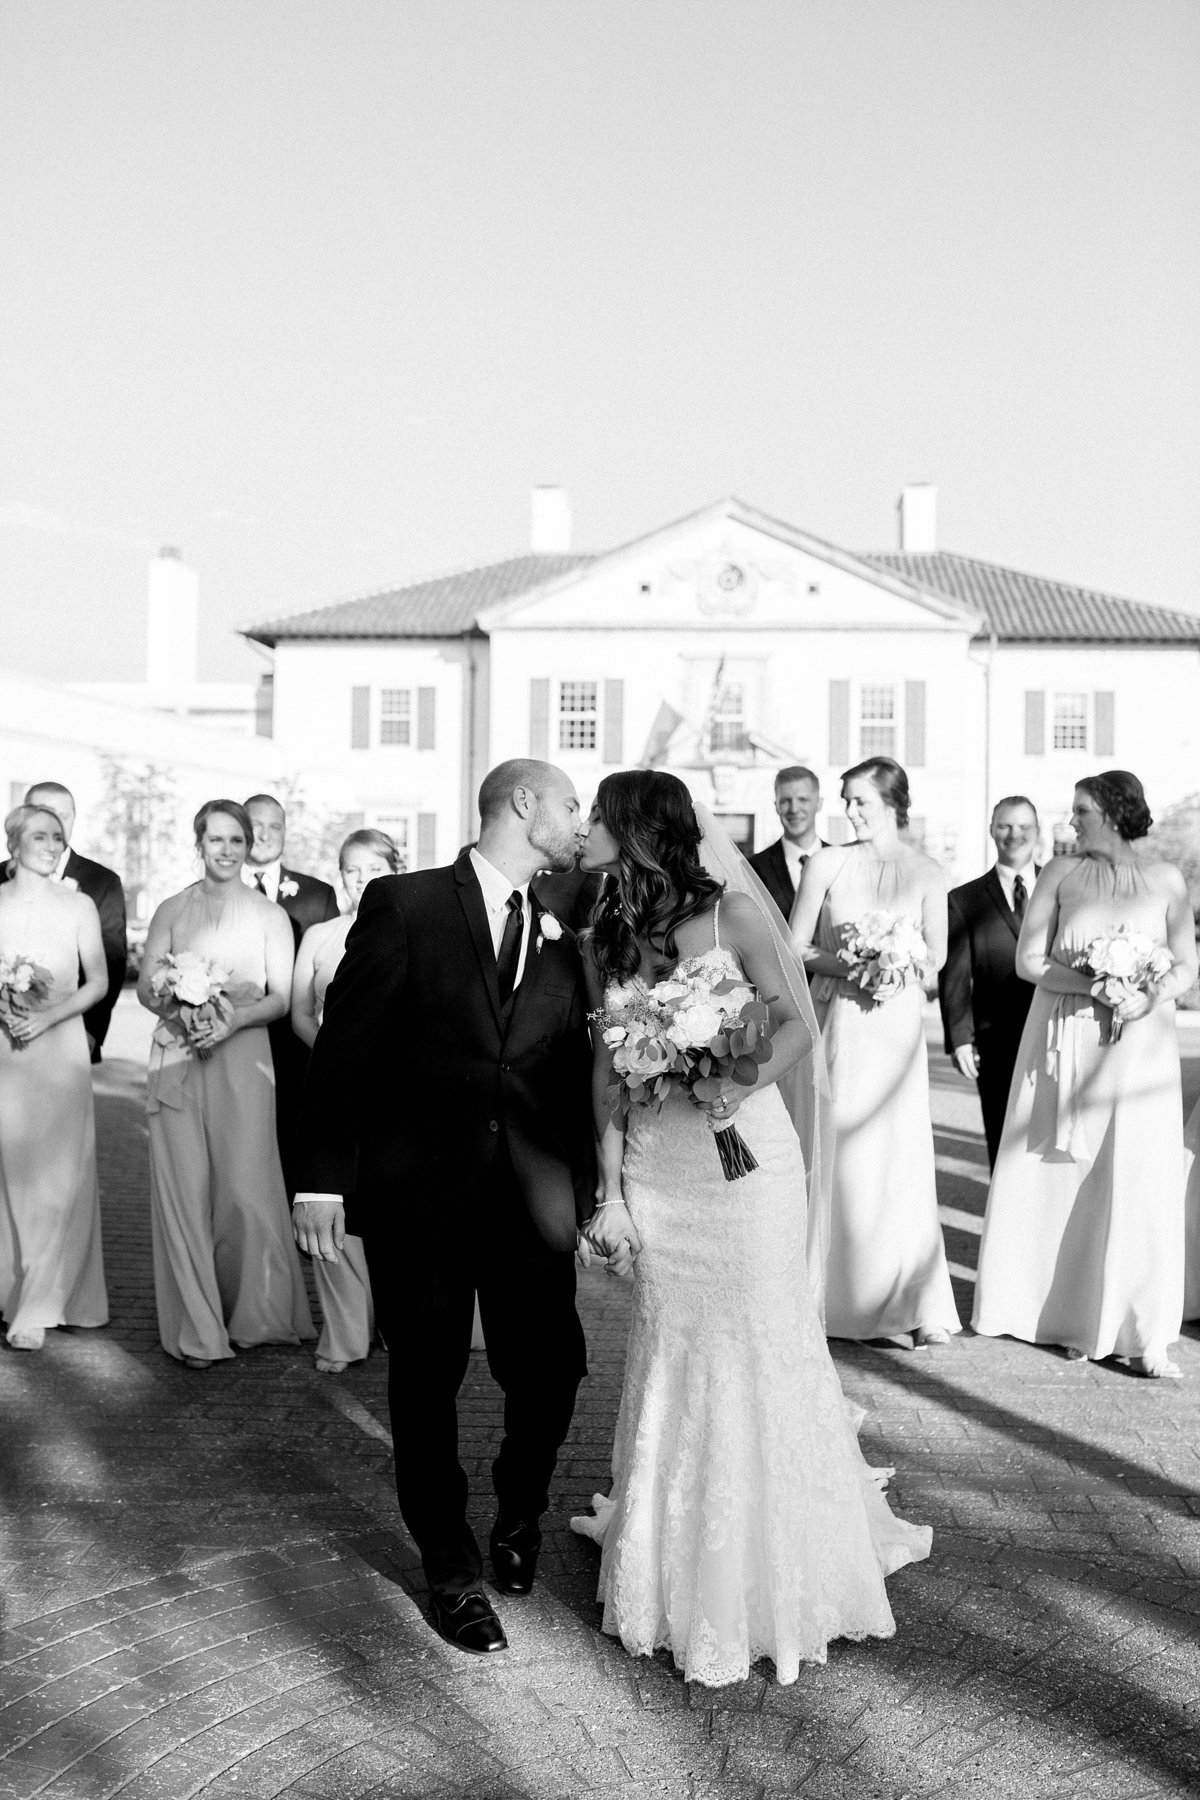 Shuster-Wedding-Grosse-Pointe-War-Memorial-Breanne-Rochelle-Photography104